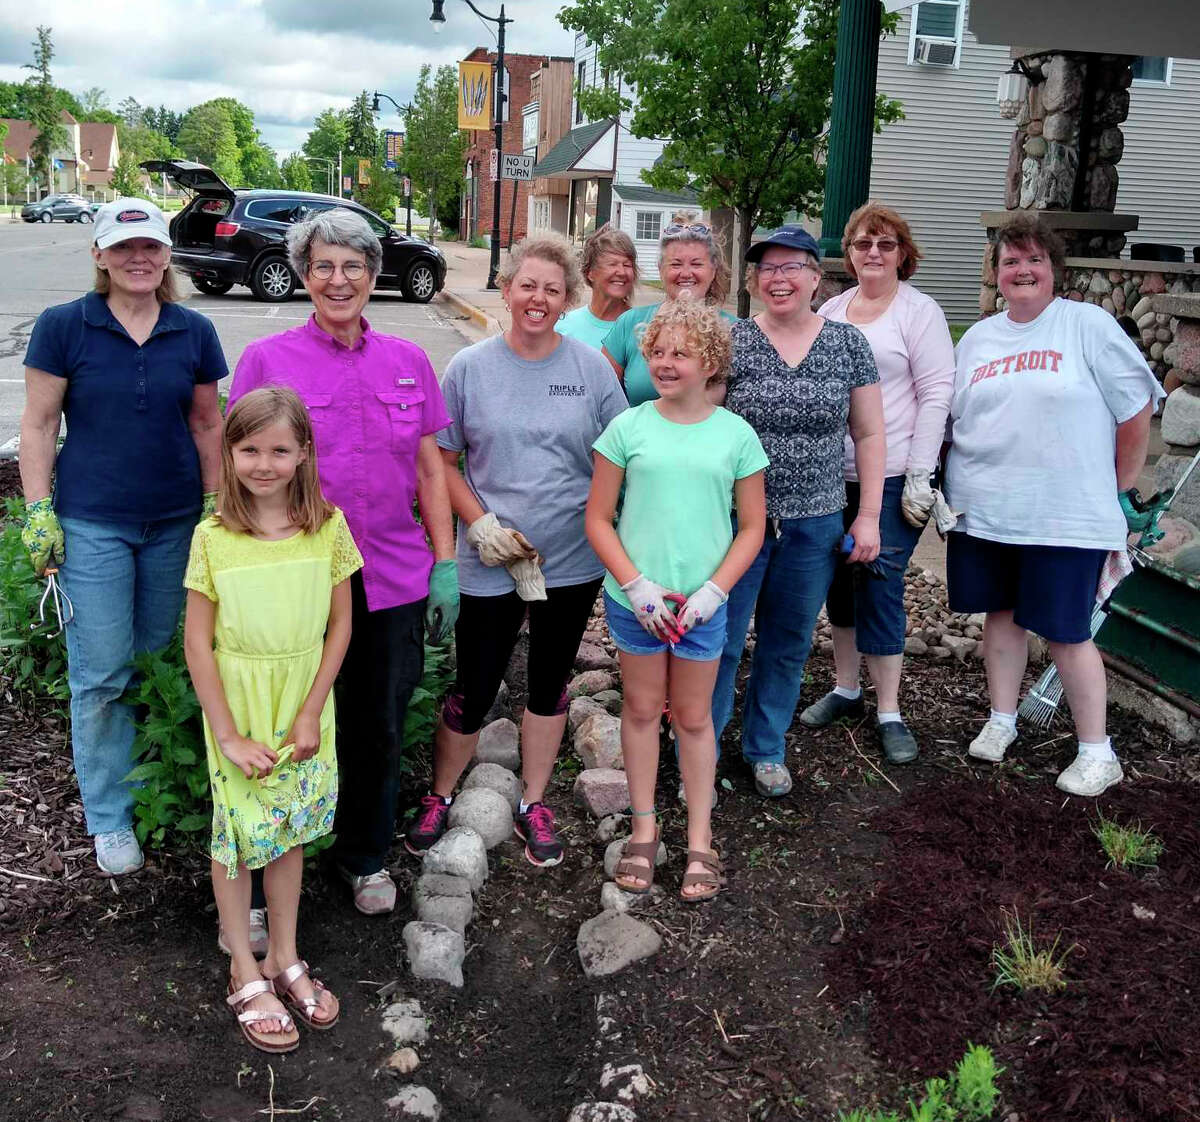 The Evart Garden Club, along with other local volunteers, cleaned and replanted the bump-out flower beds in downtown Evart this past spring. The work will continue this coming spring as more plants are added.